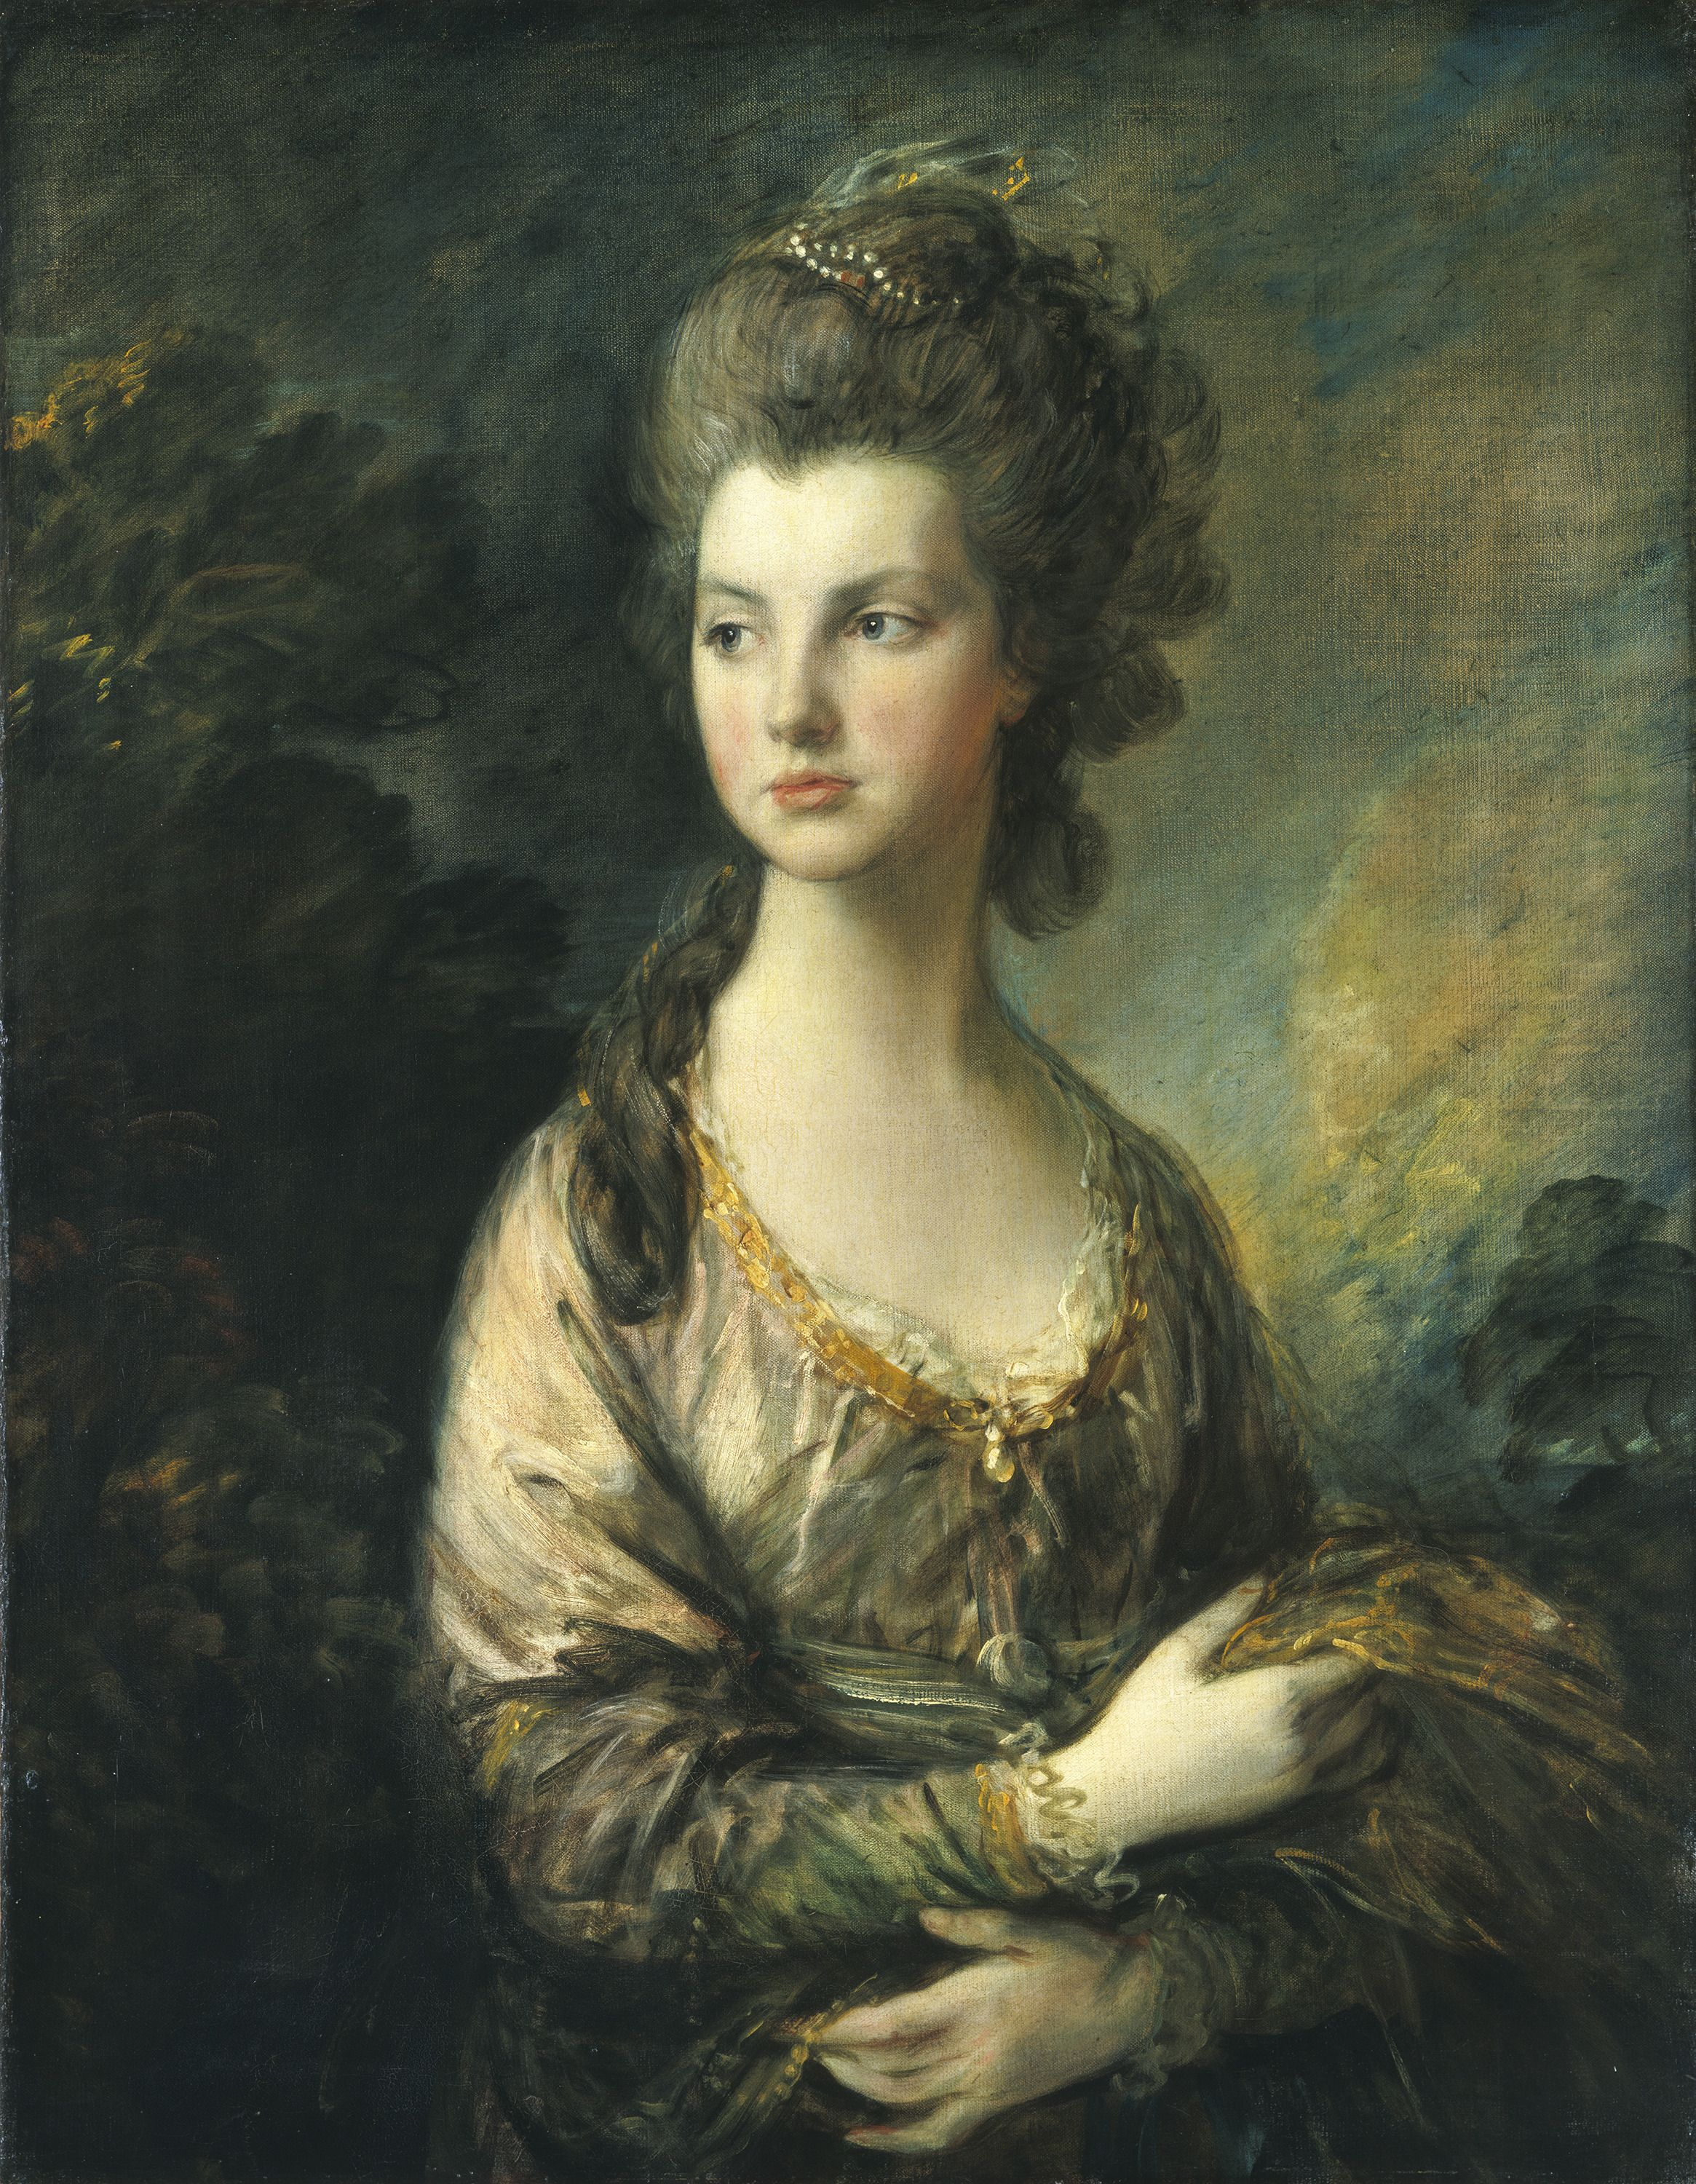 The Hon. Mrs. Thomas Graham, ca. 1775/1777, by Thomas